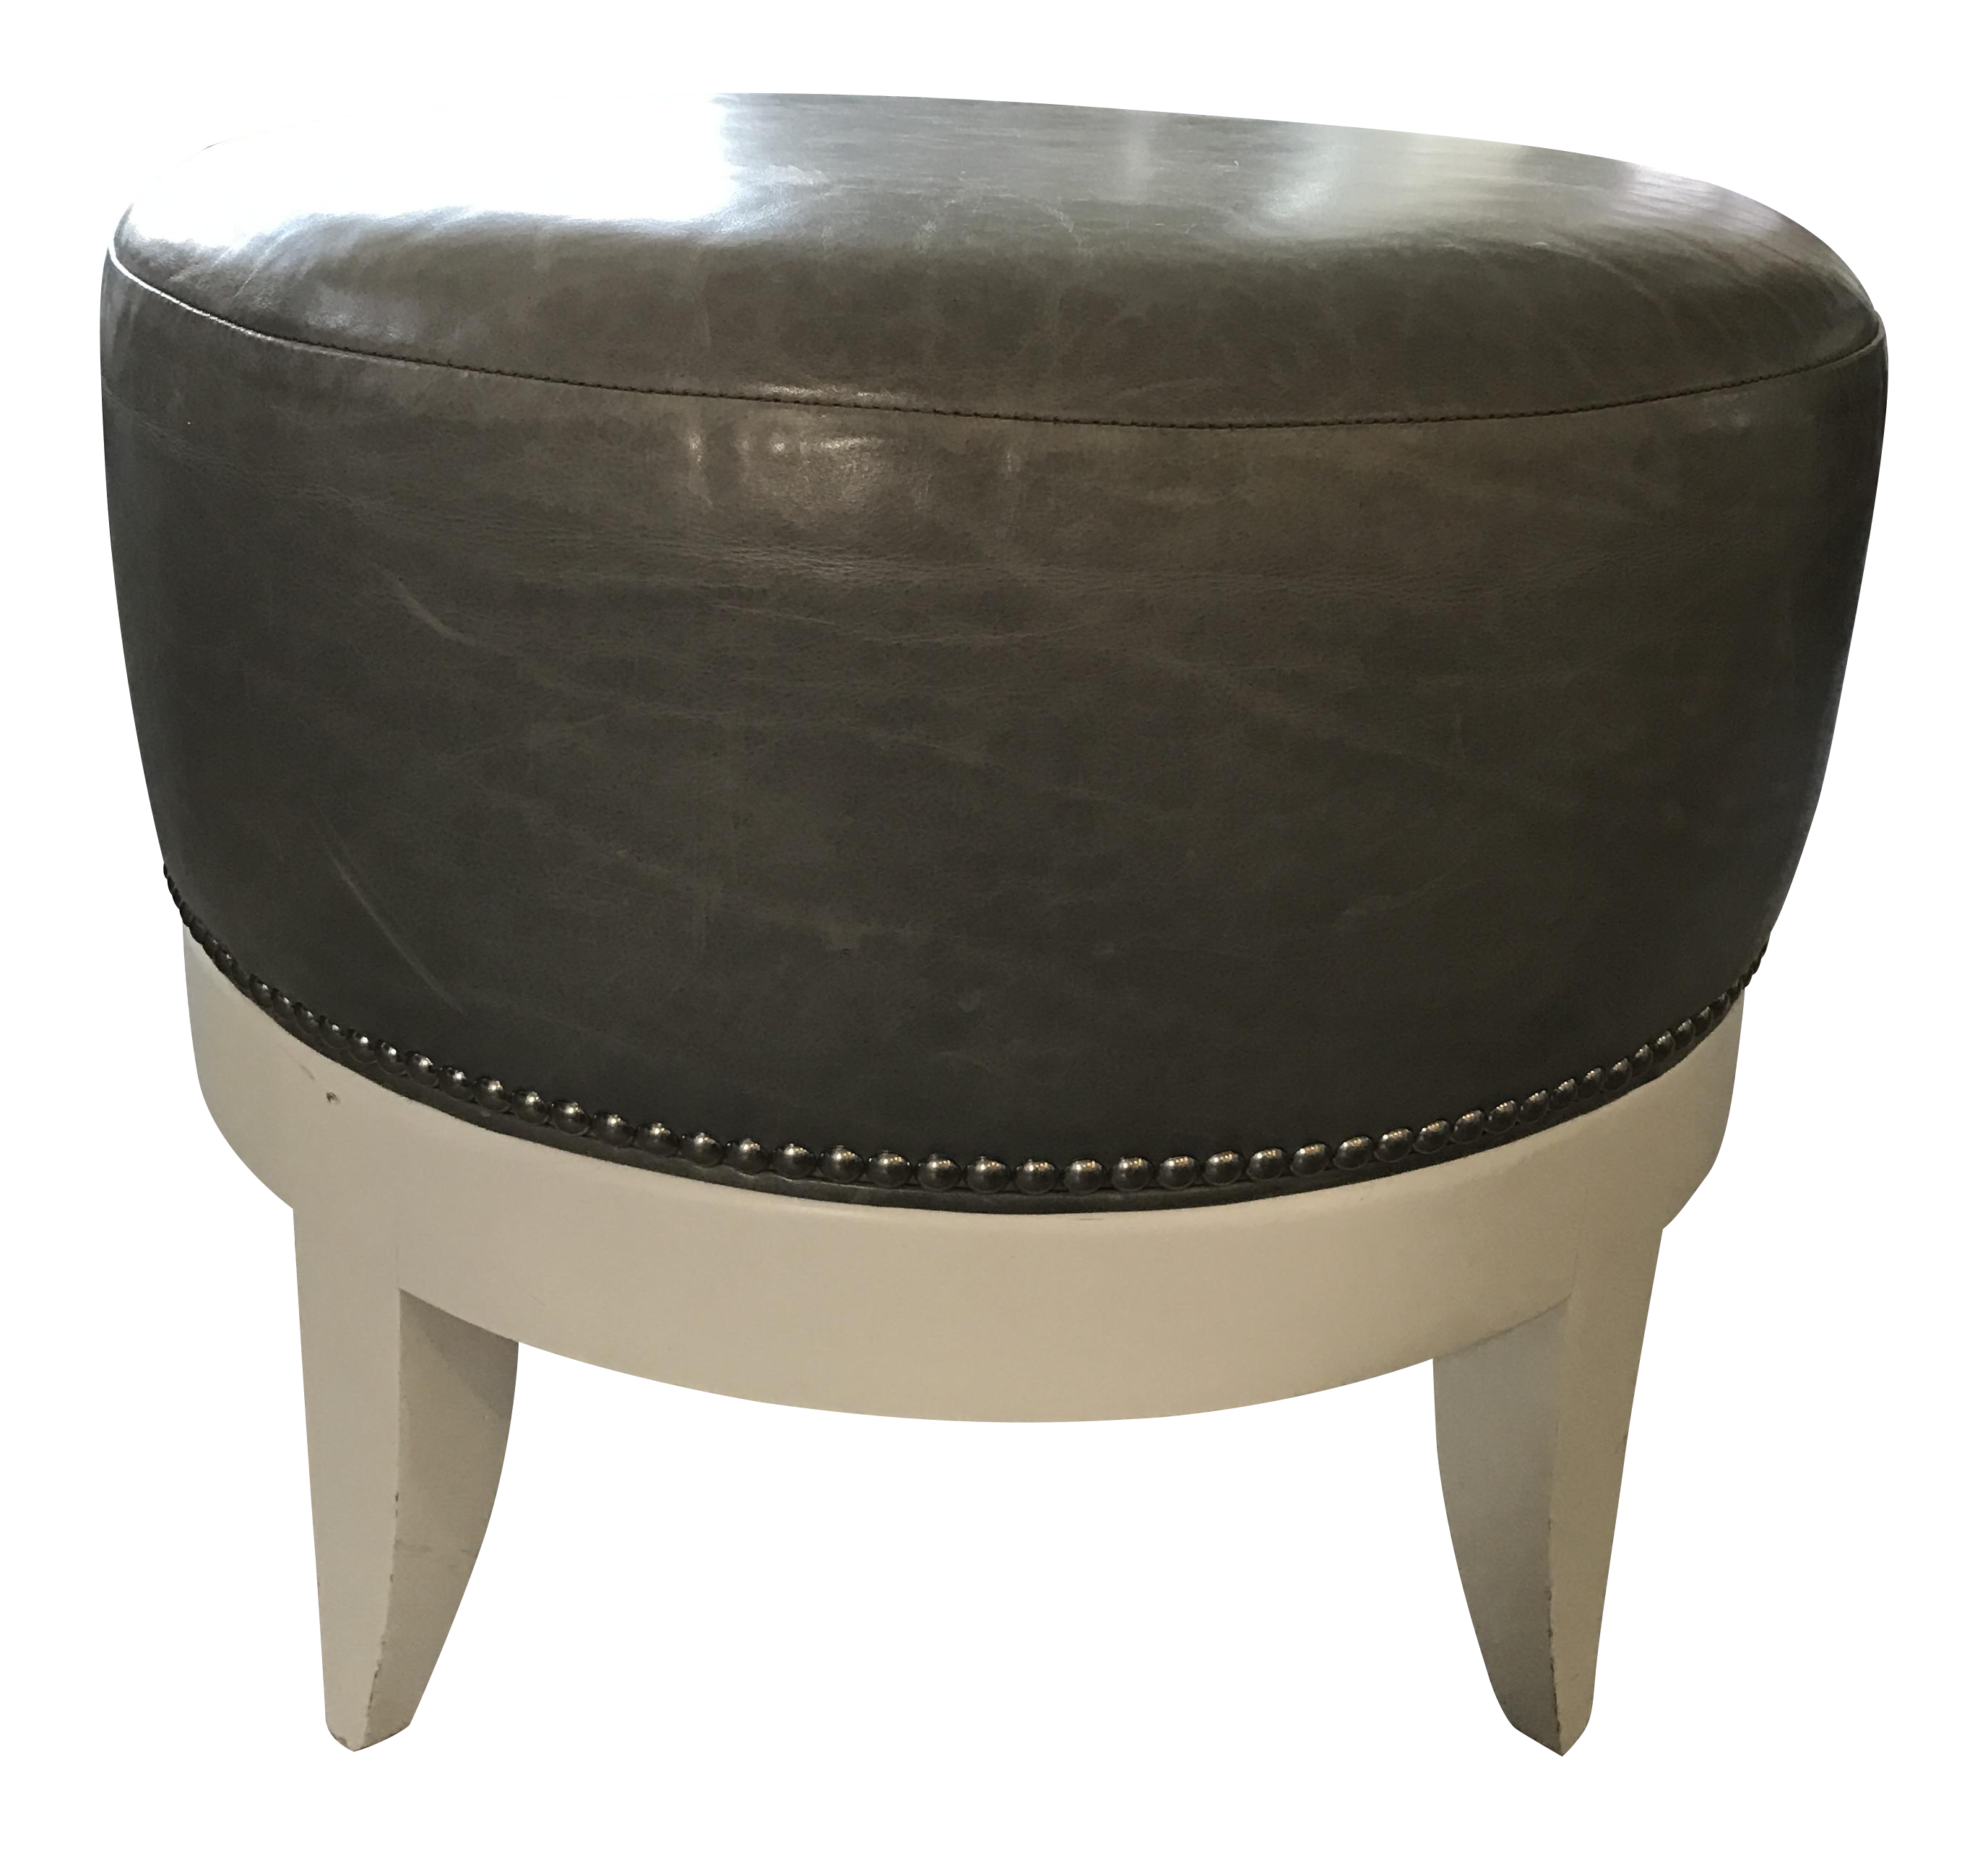 Superbe Hickory Chair Suzanne Kasler Auburn Small Stool